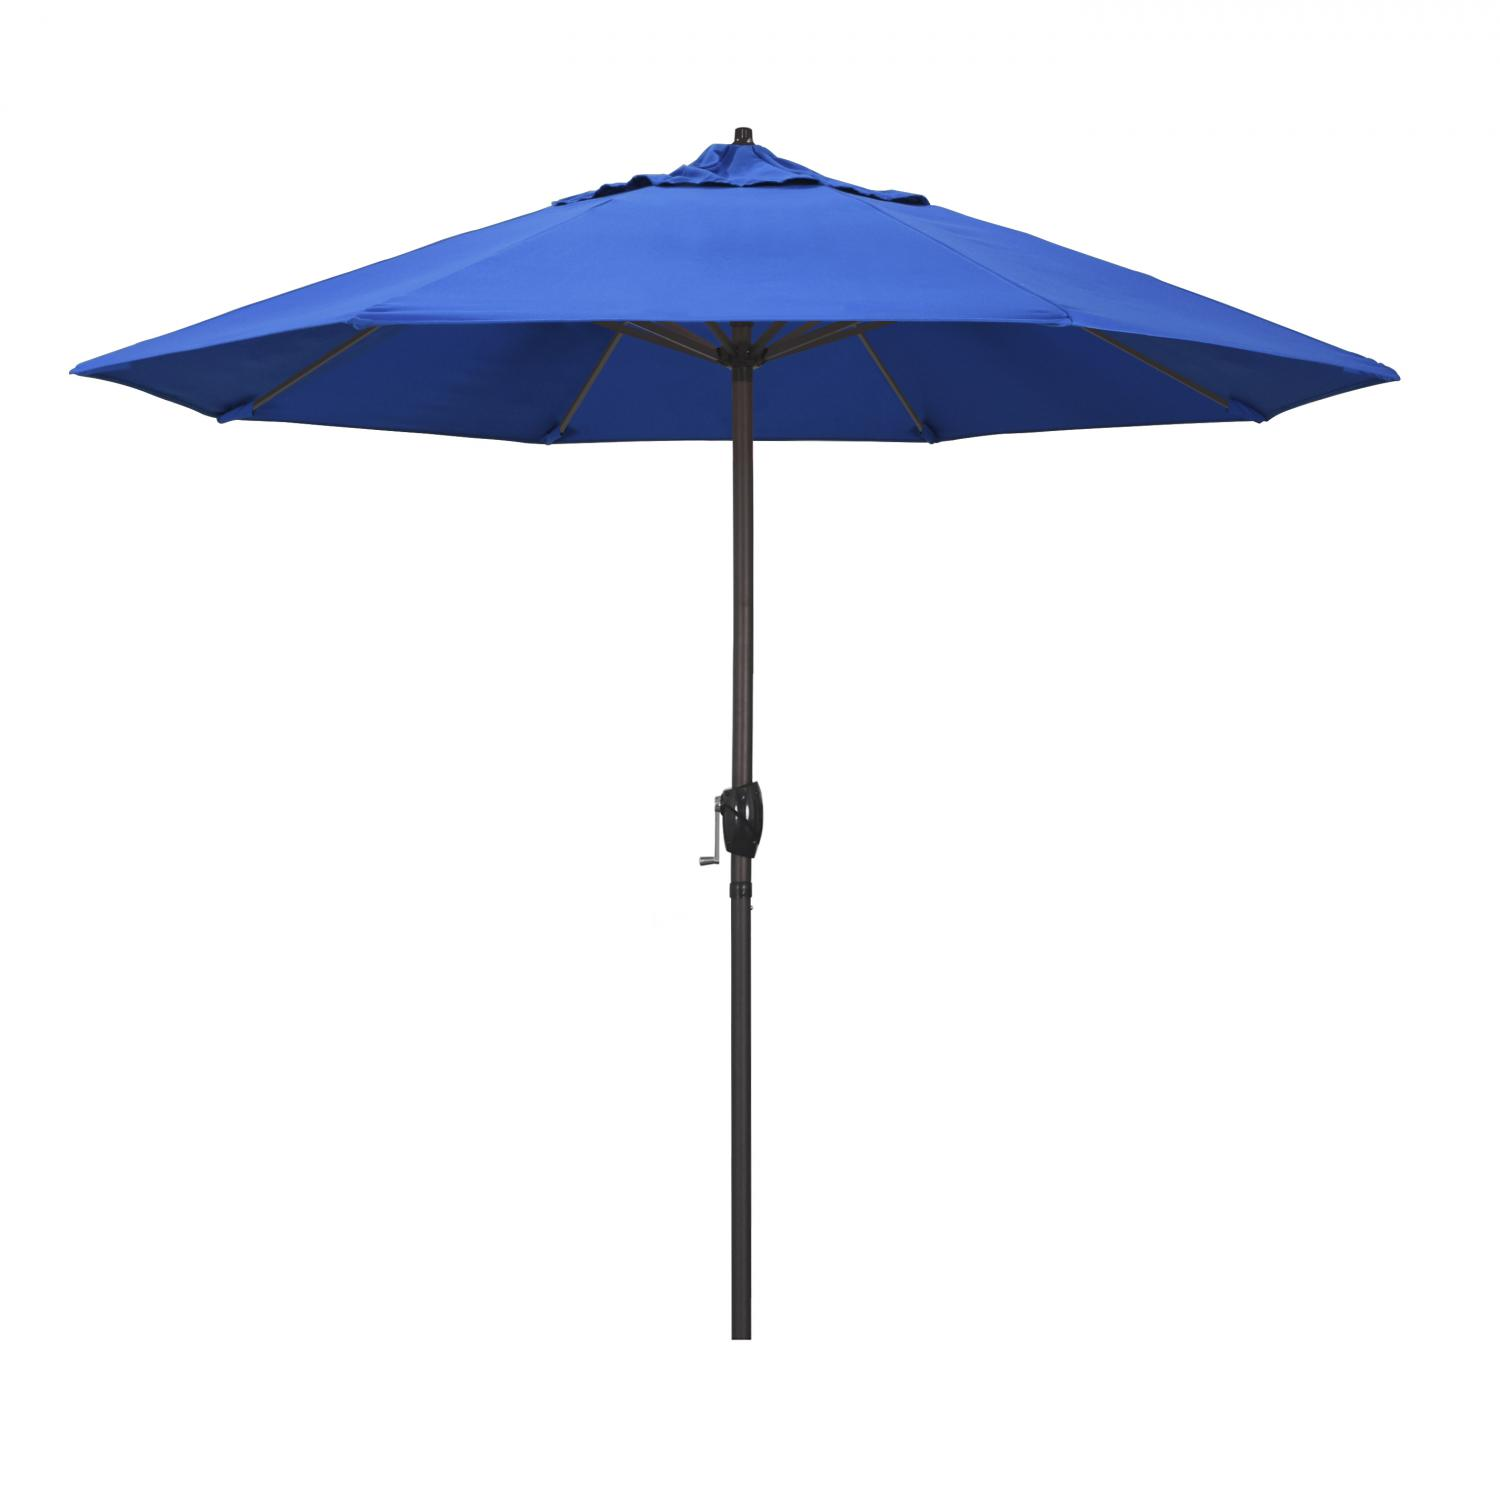 California Umbrella 9 Ft. Octagonal Aluminum Auto Tilt Patio Umbrella W/ Crank Lift & Aluminum Ribs - Bronze Frame / Royal Blue Canopy